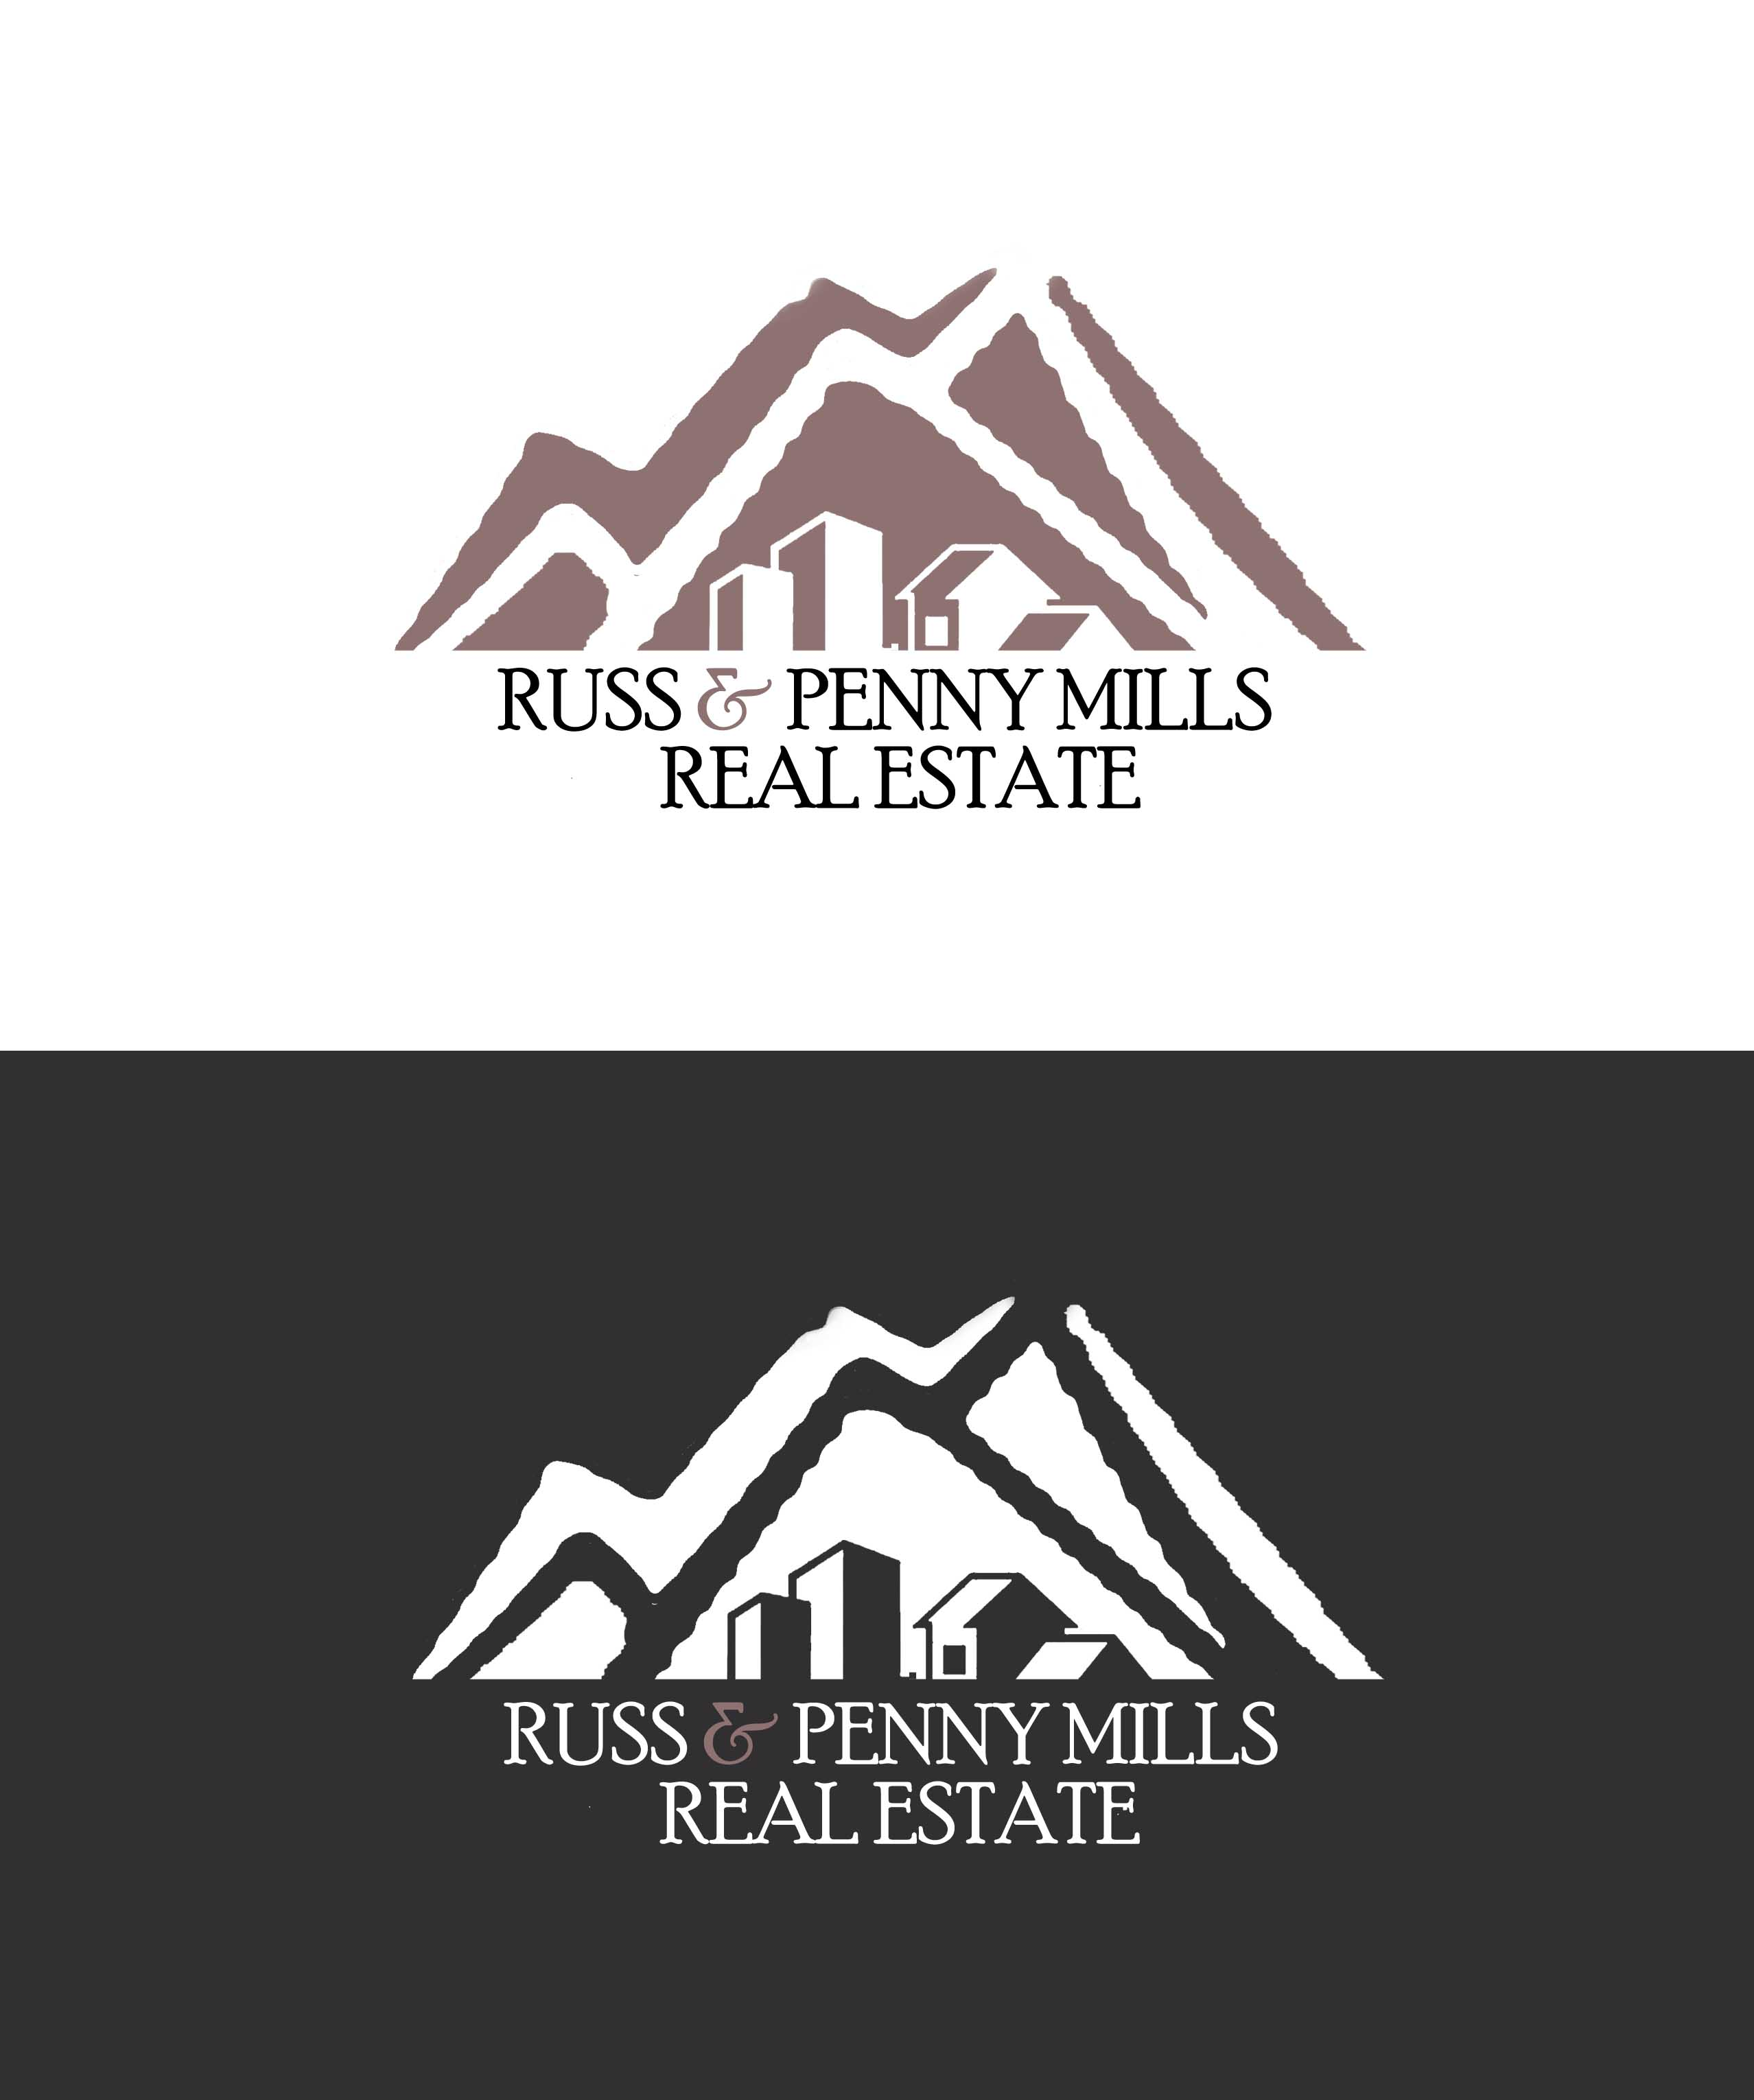 Custom Design by Lama Creative - Entry No. 6 in the Custom Design Contest Fun Custom Design for Russ and Penny Mills (realtors).